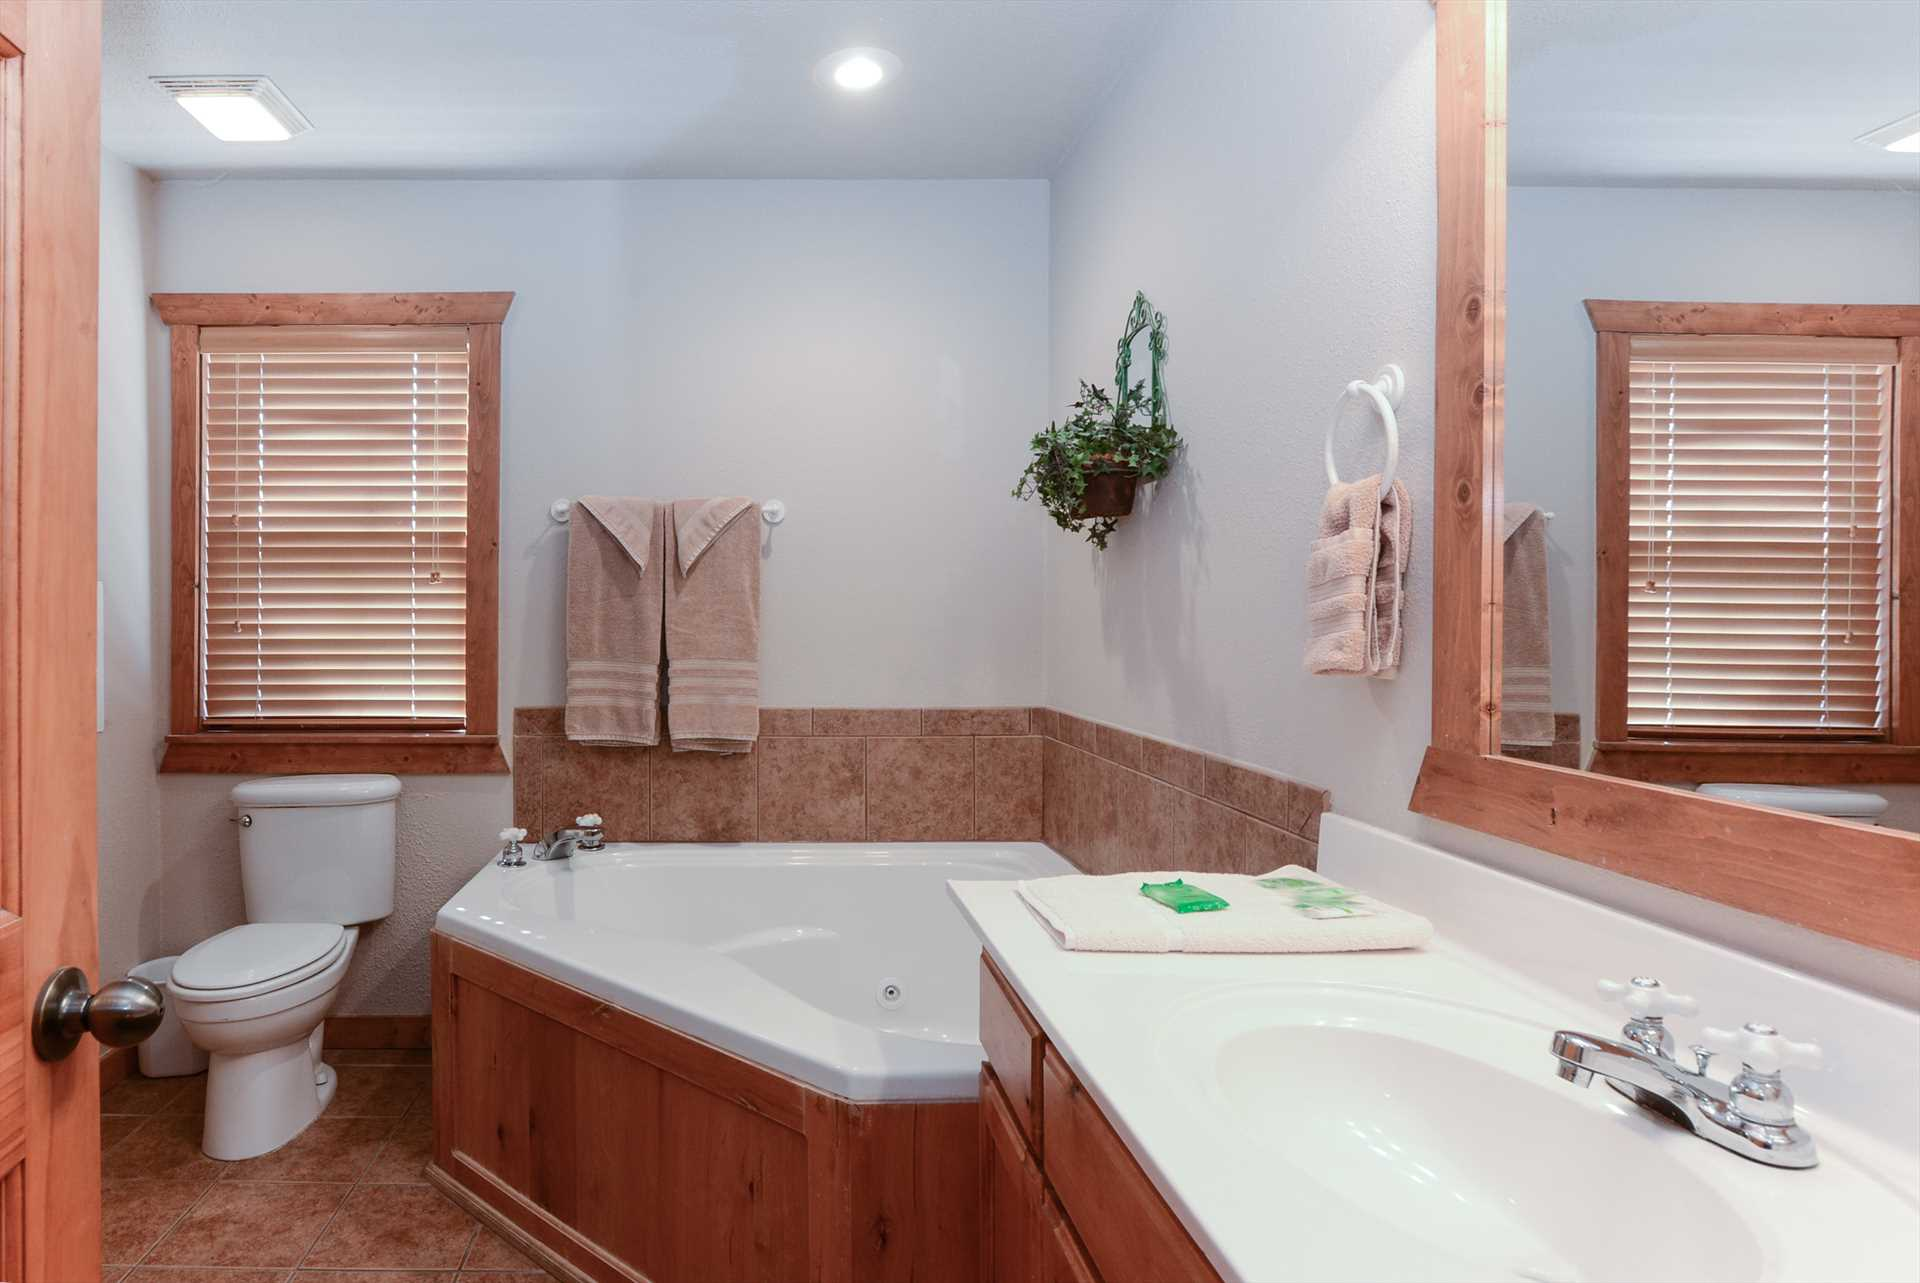 One of the master baths with whirlpool tub and seperate show